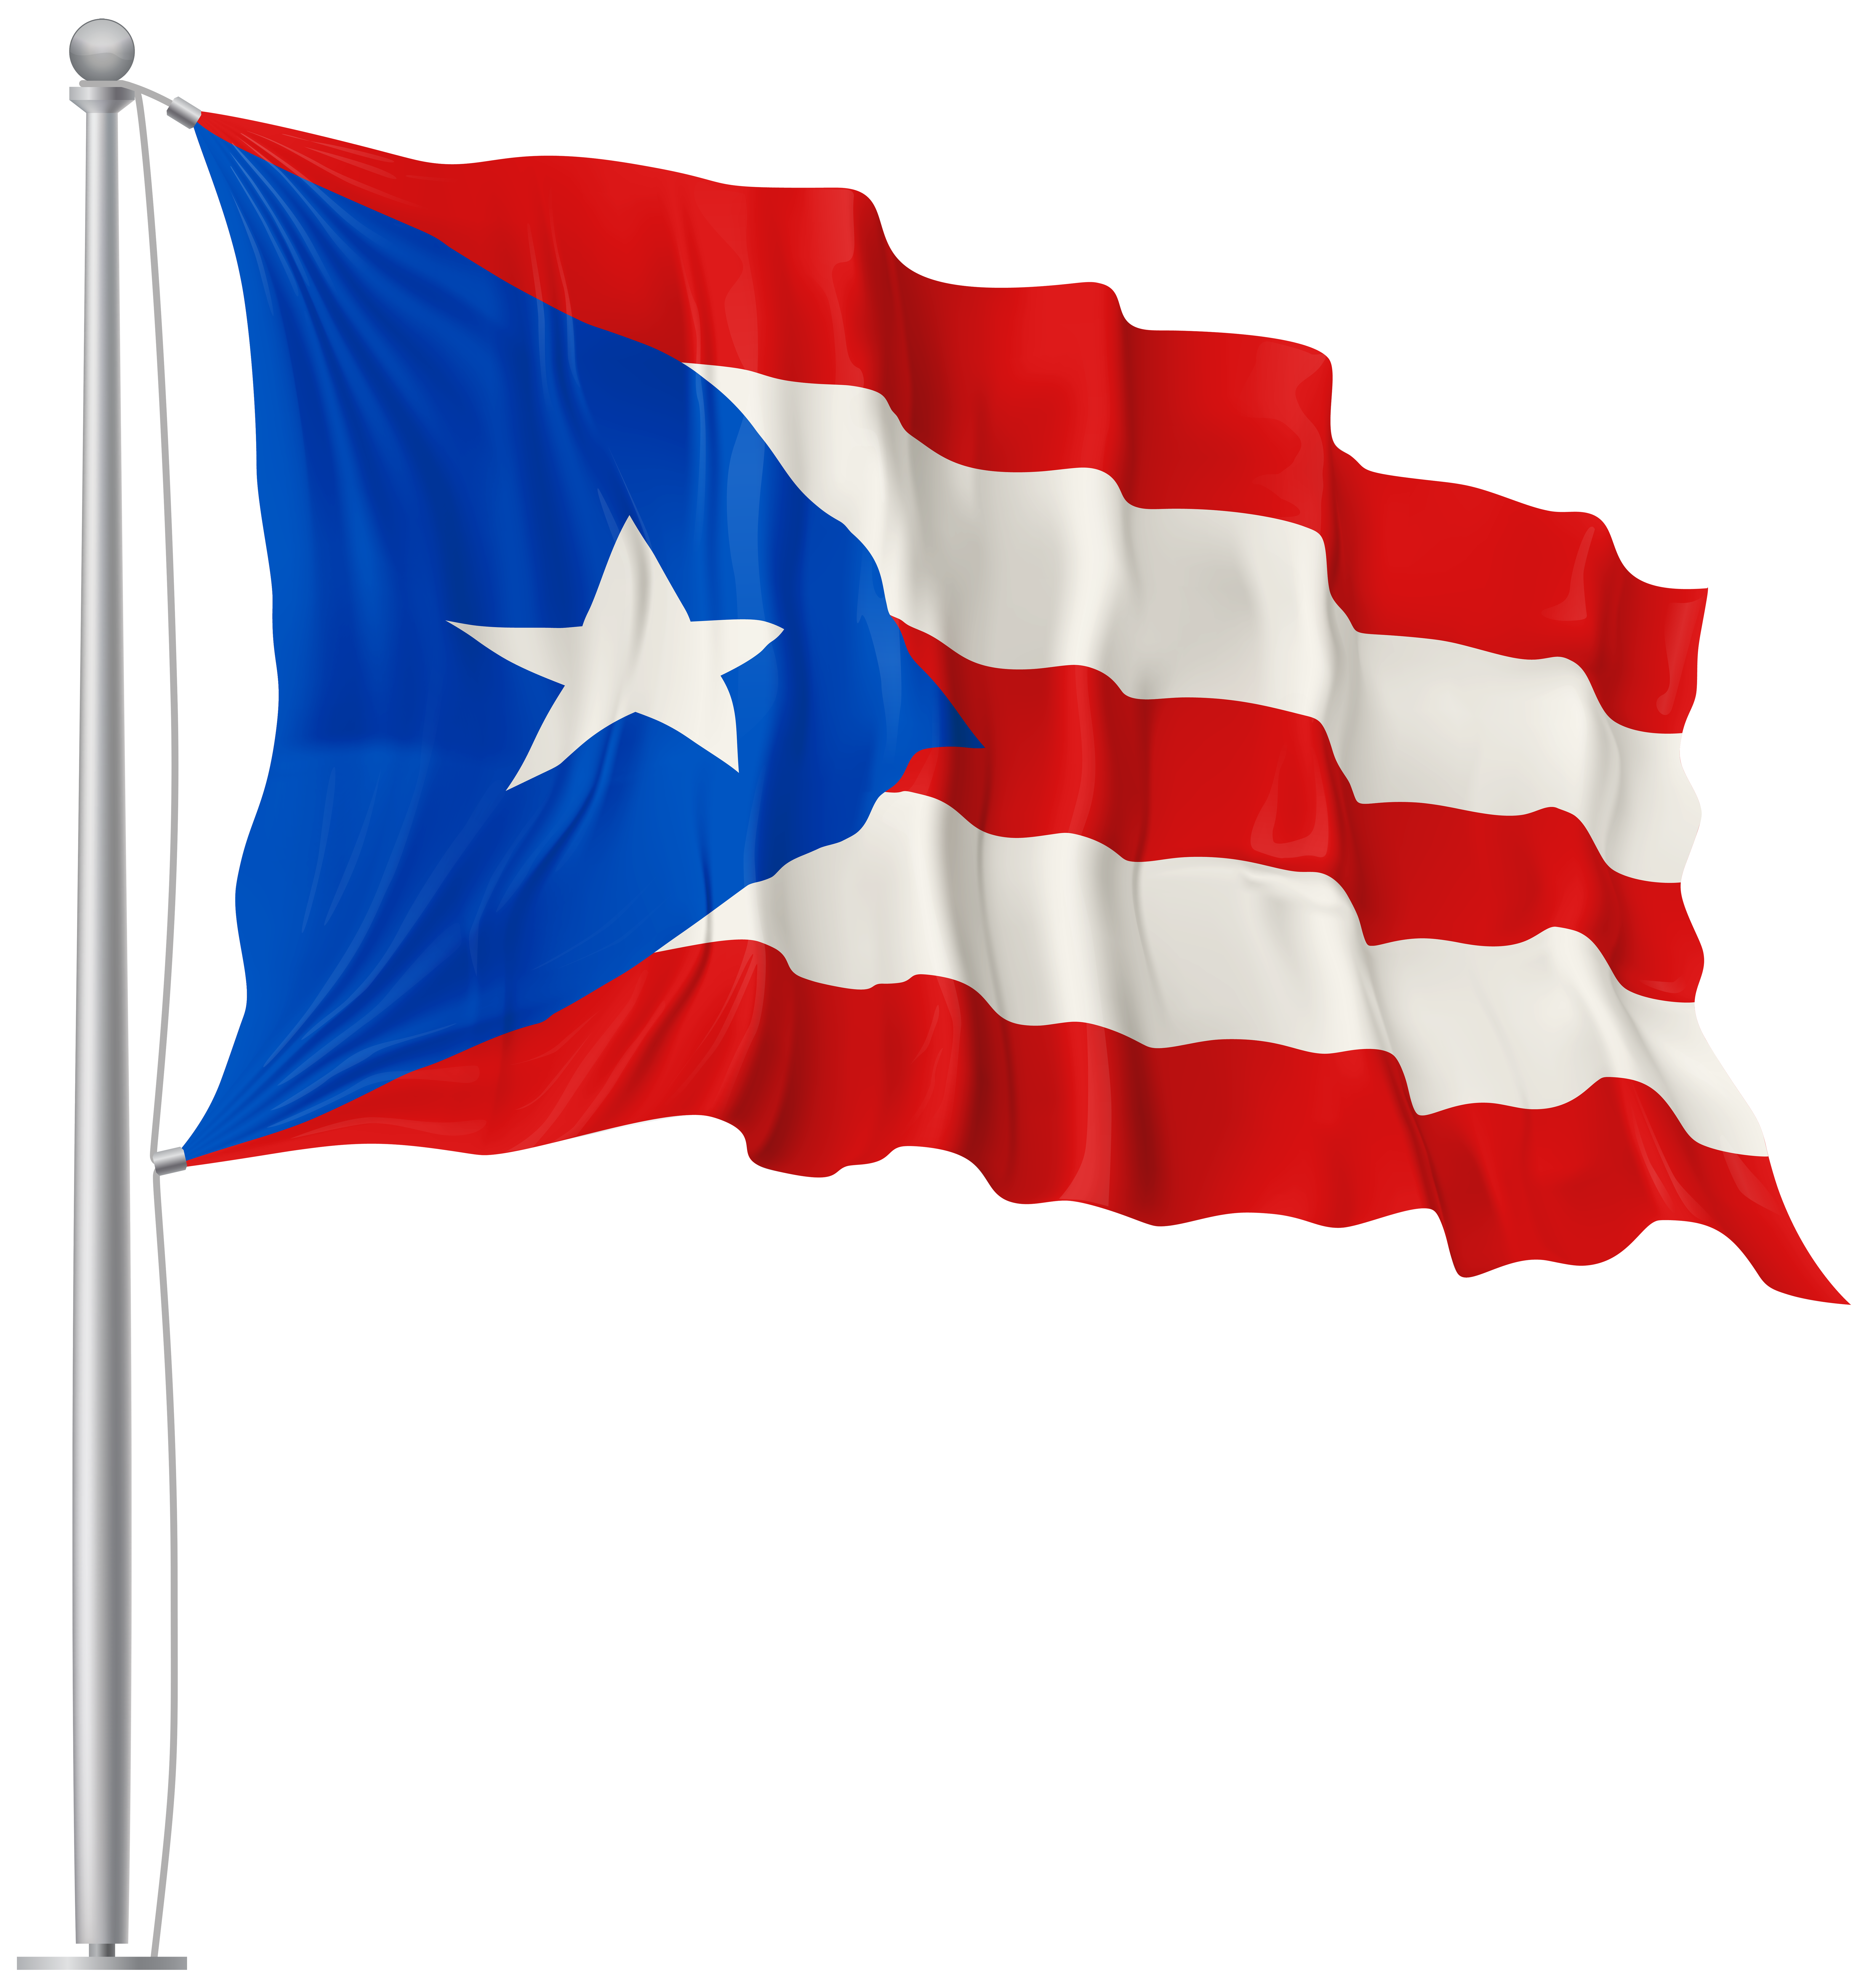 Puerto rican flag png. Rico waving image gallery